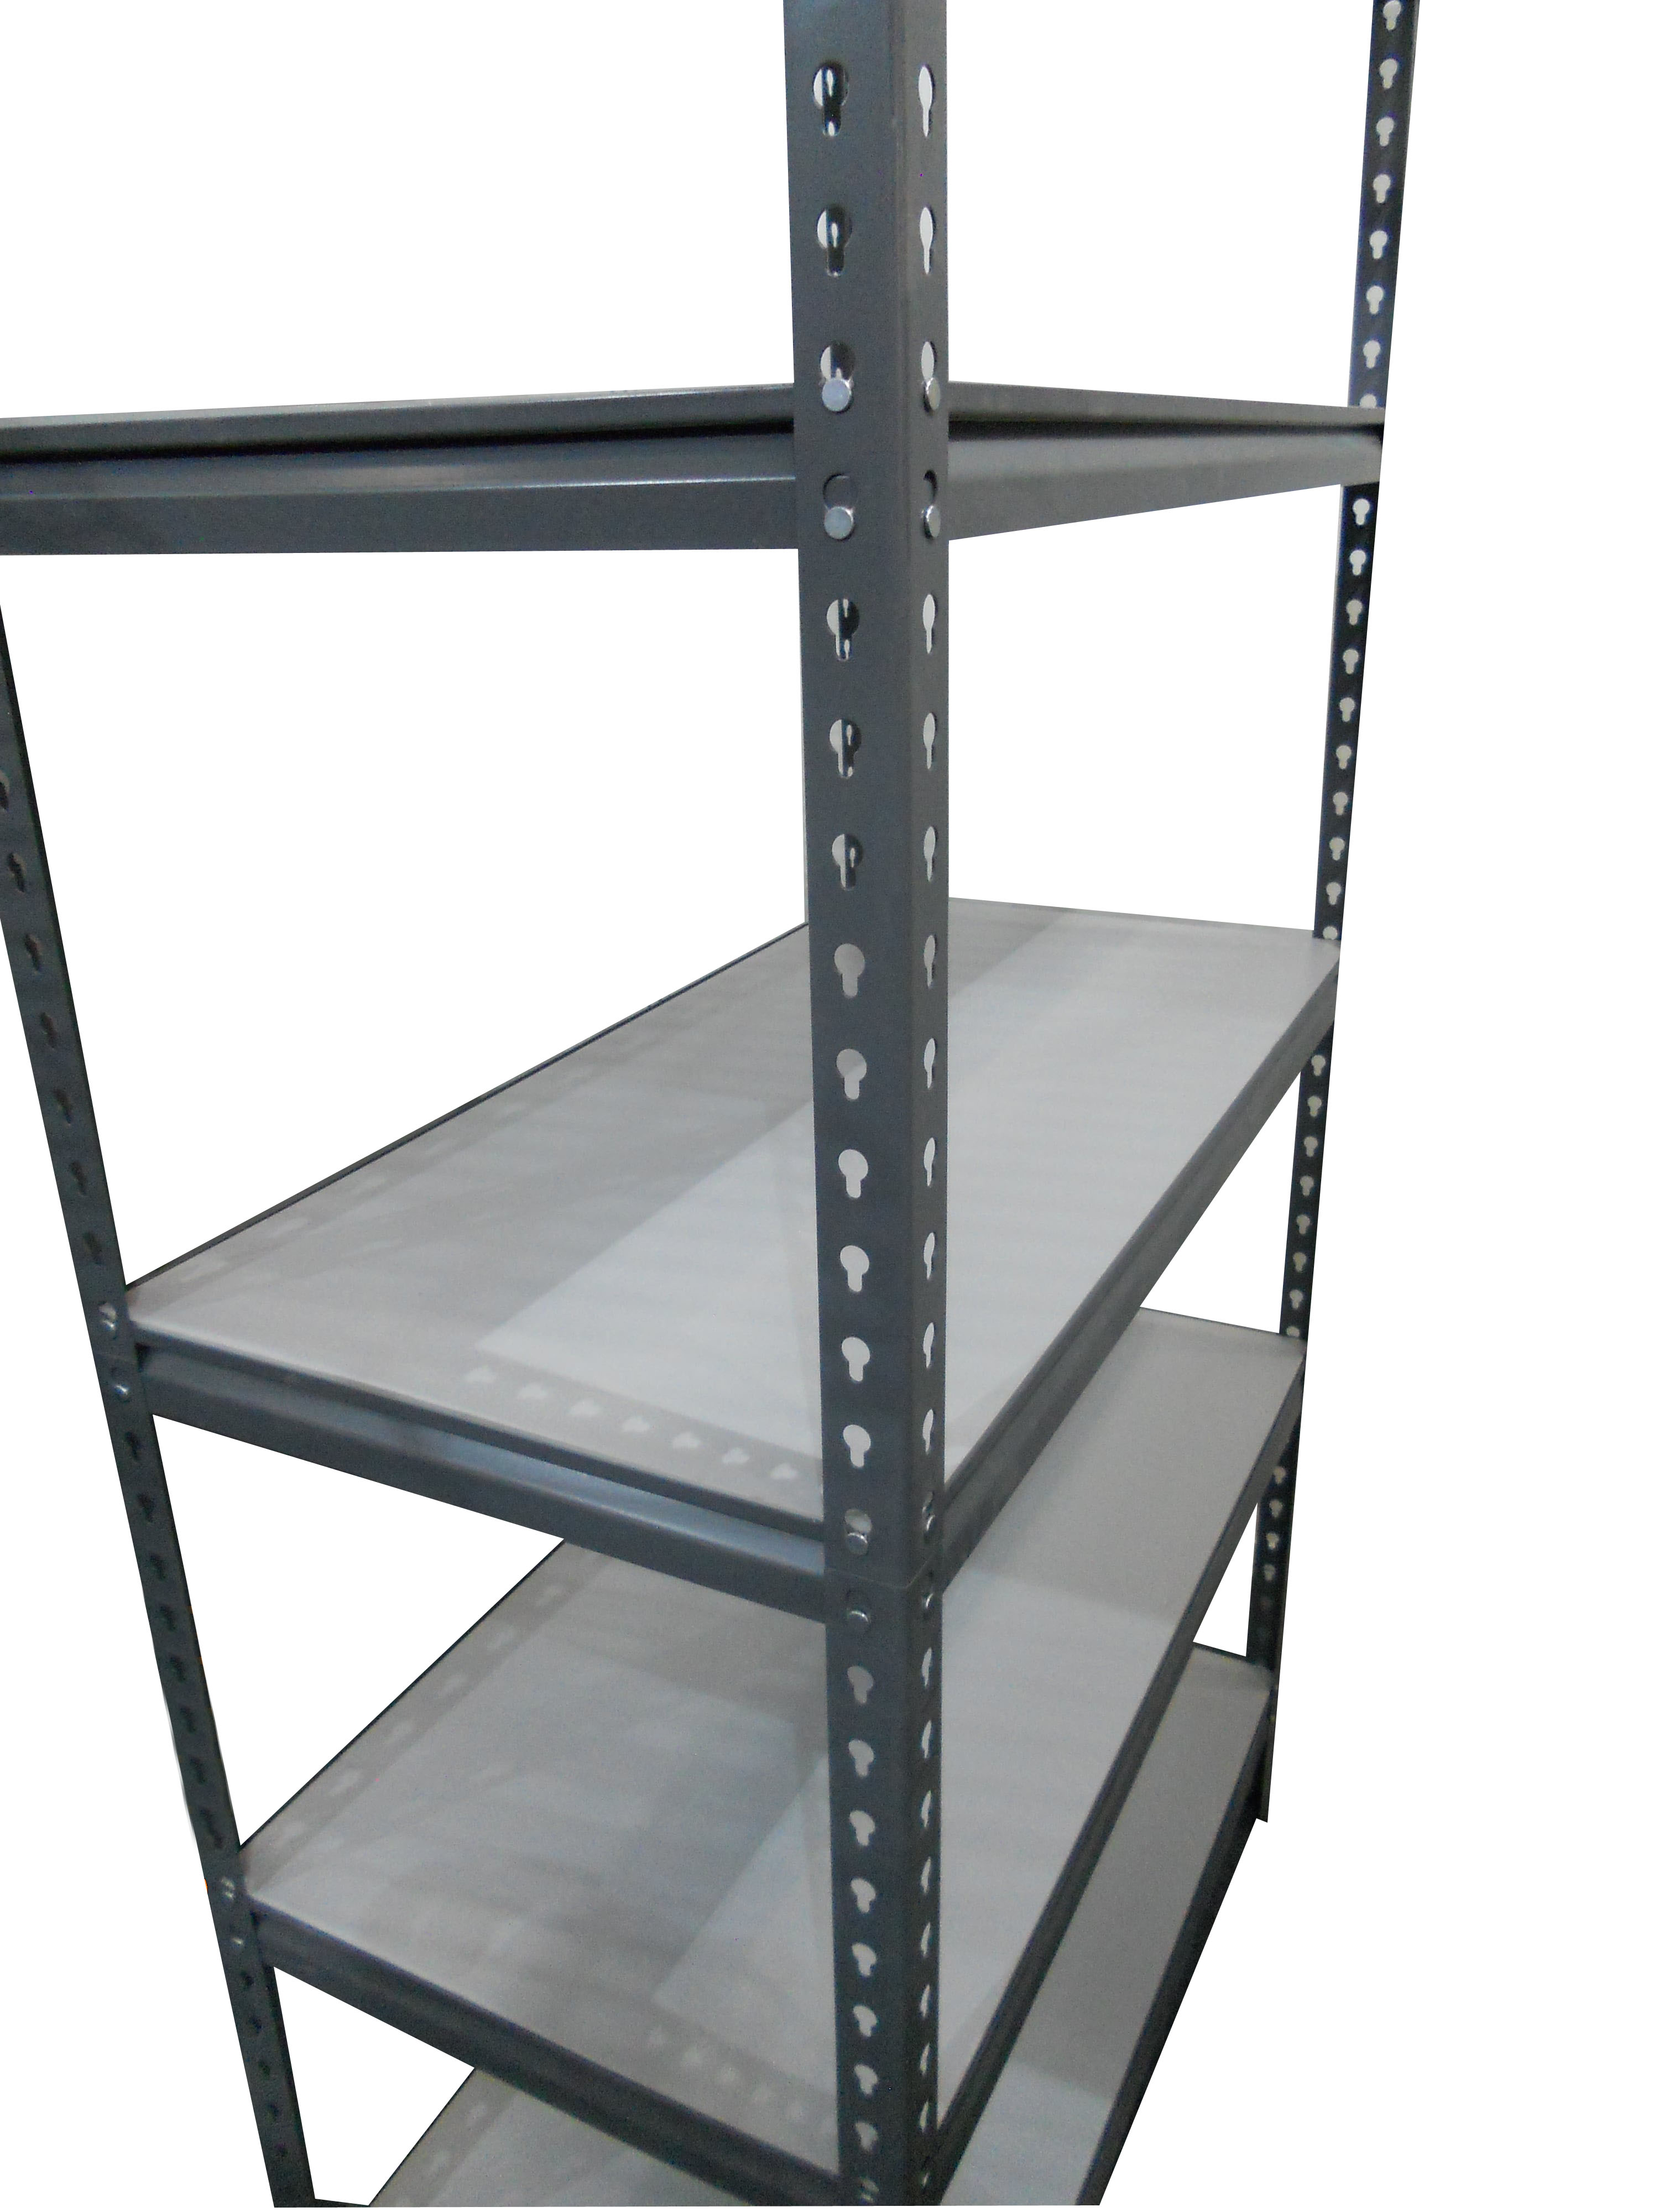 Saras M S Powder Coated Boltless Storage Rack Load Capacity 350 Kg